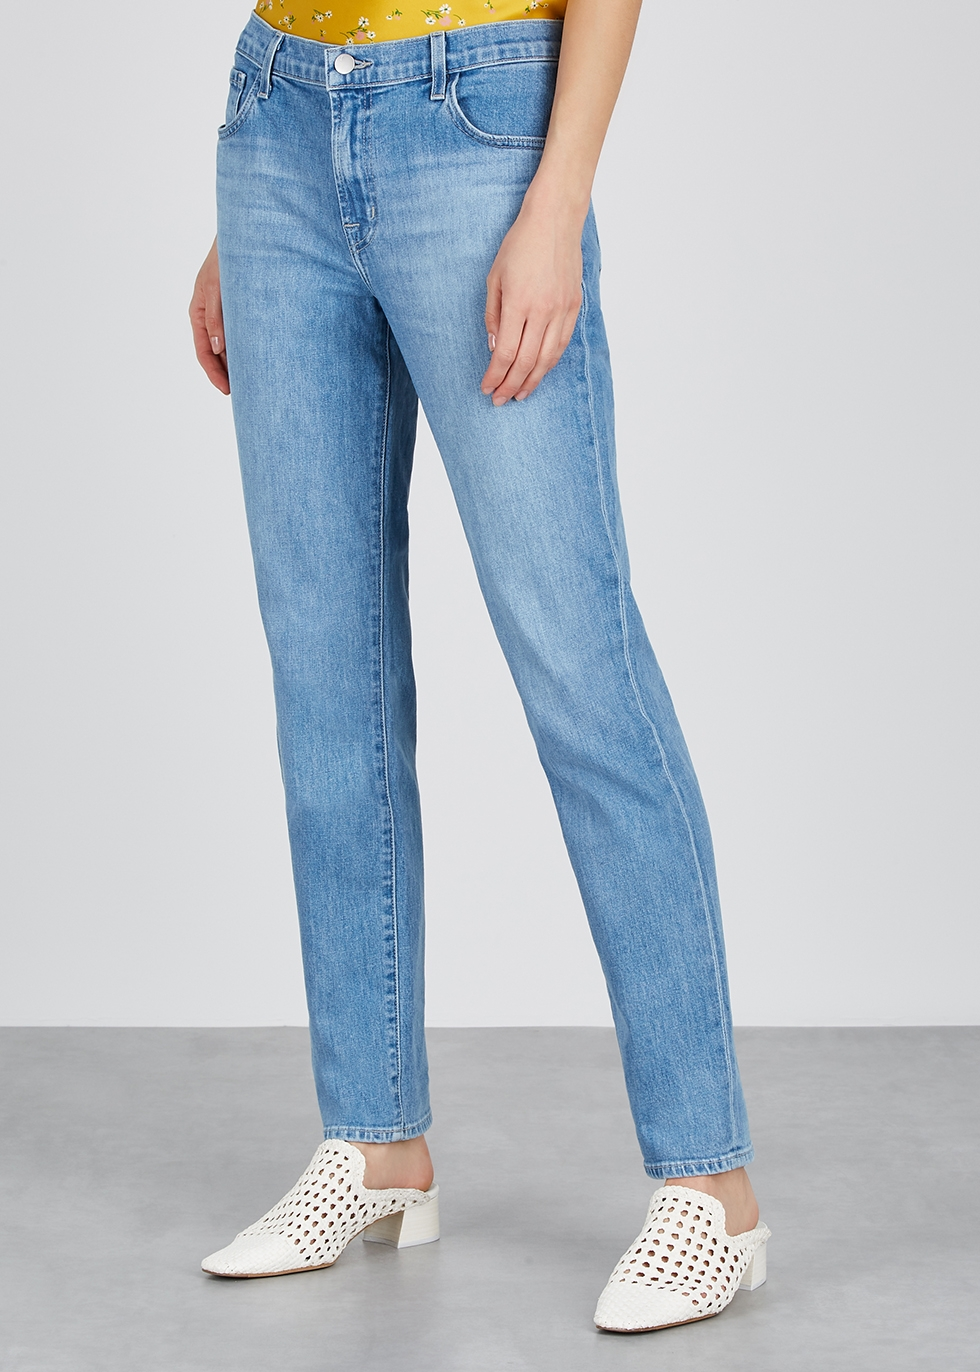 Johnny blue straight-leg jeans - J Brand